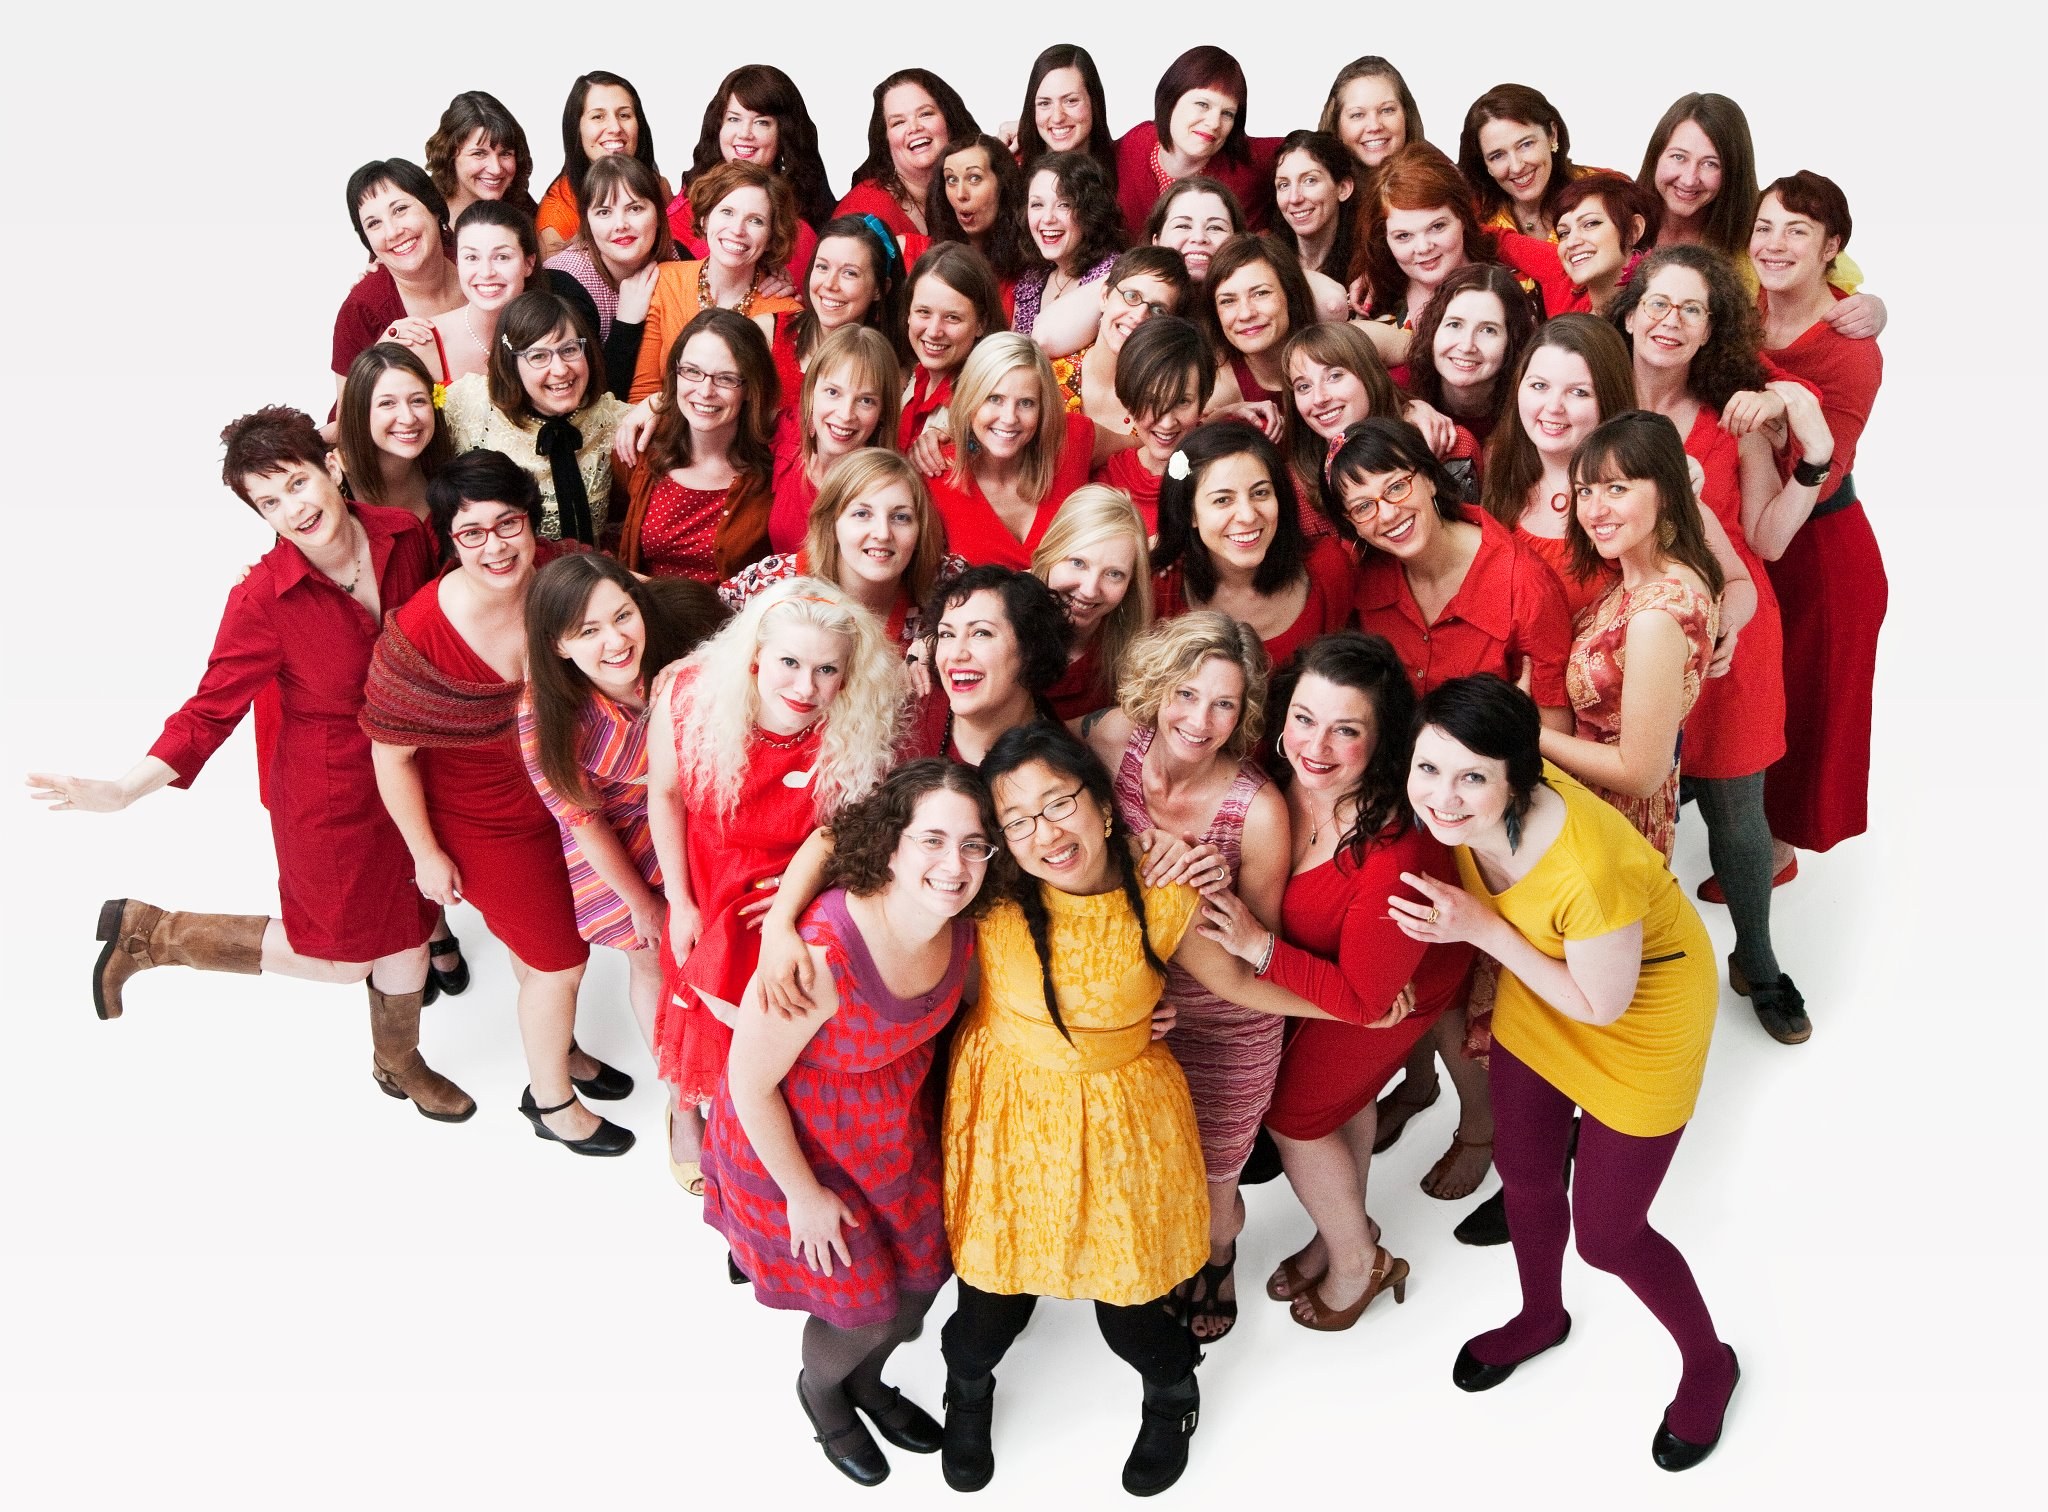 2012 Prairie Fire Lady Choir Members